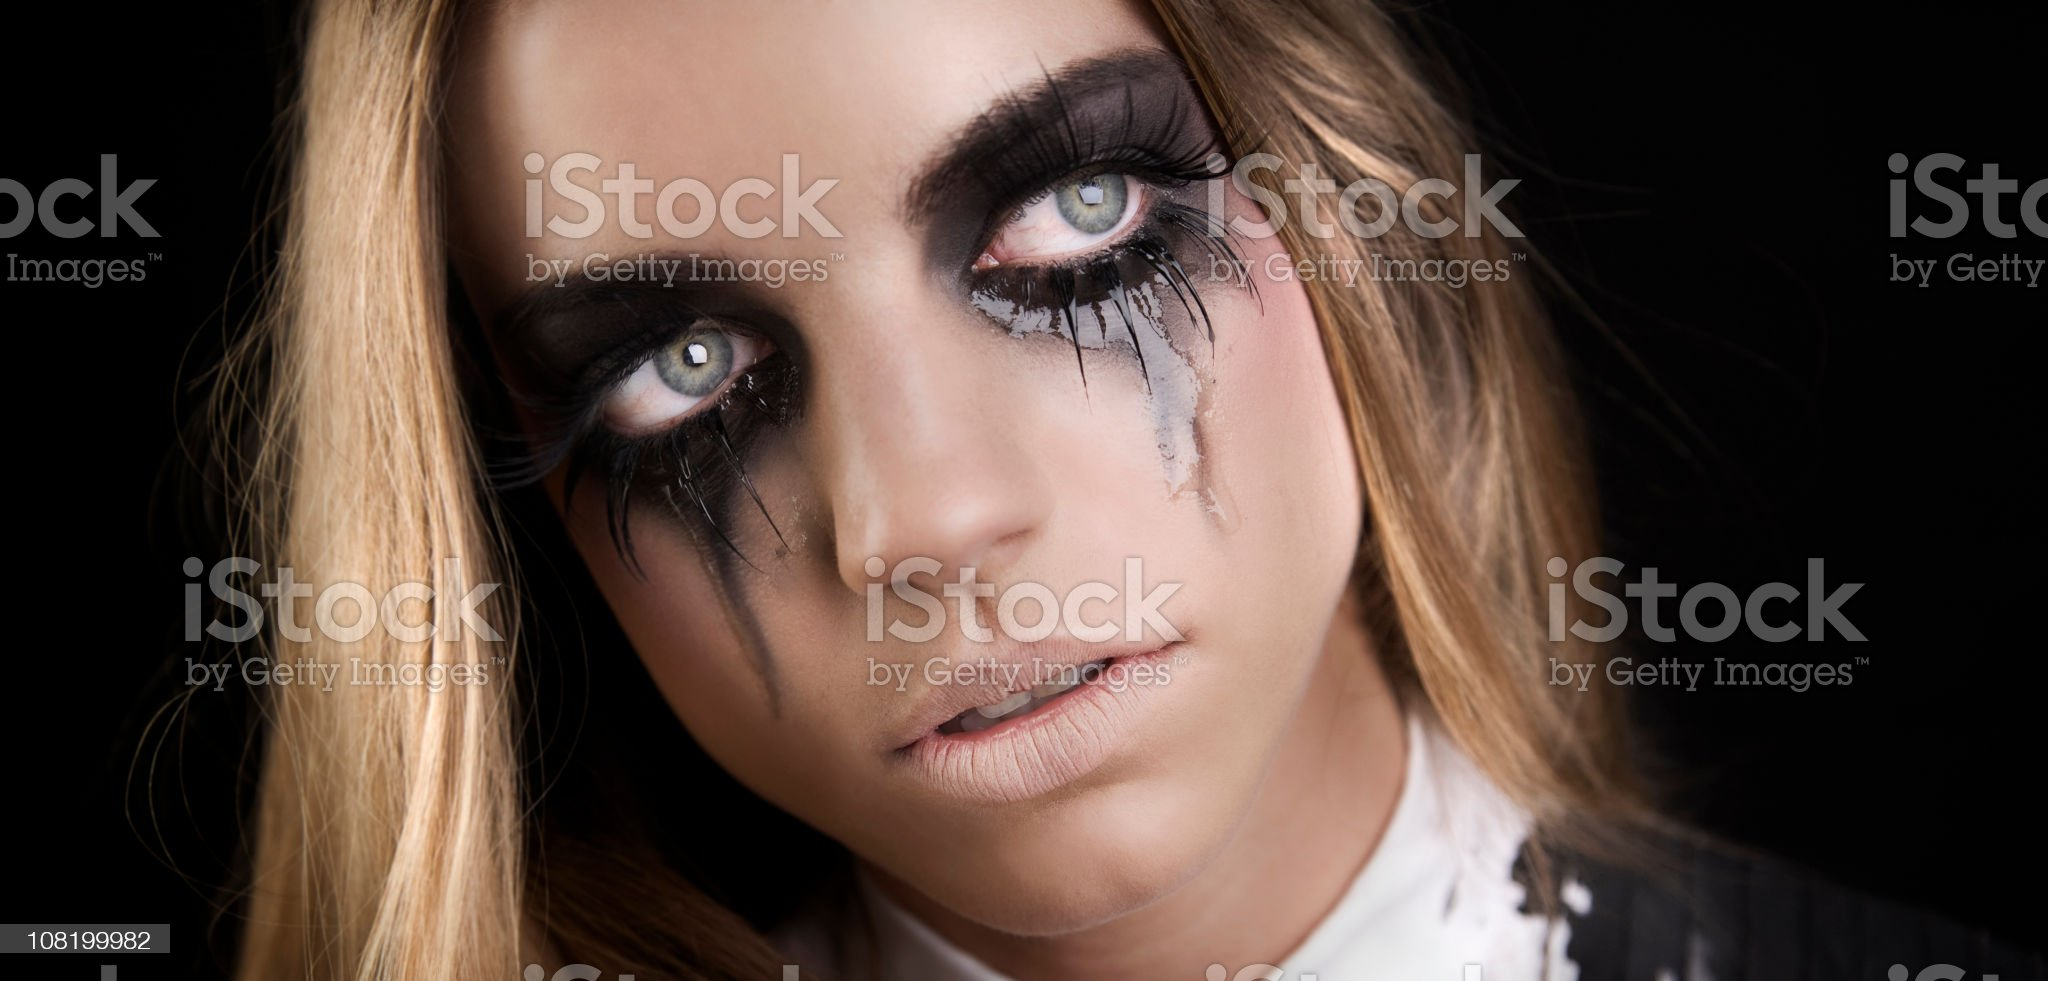 Young Woman with Mascara Running Down Cheeks Crying royalty-free stock photo